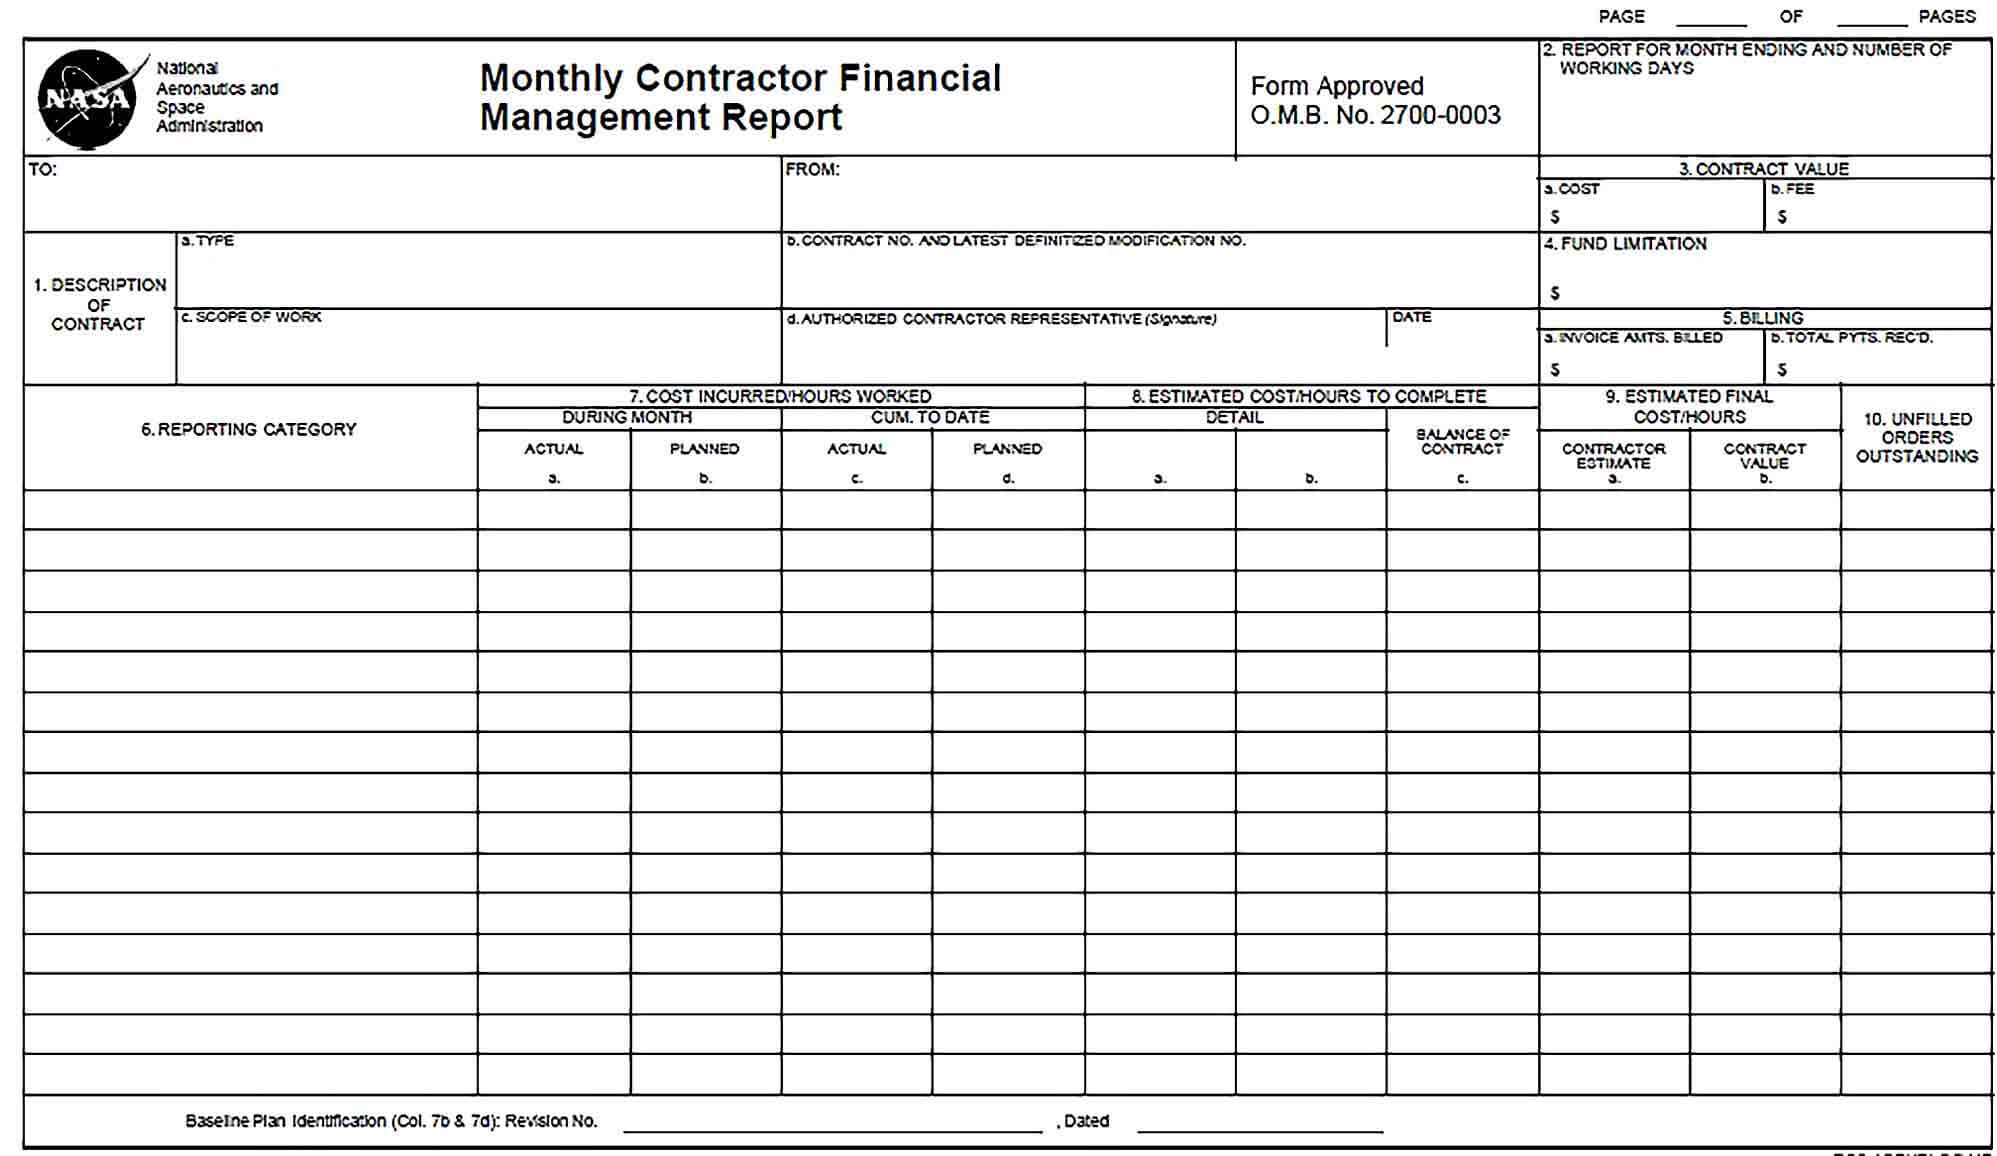 Sample Monthly Contractor Financial Management Report